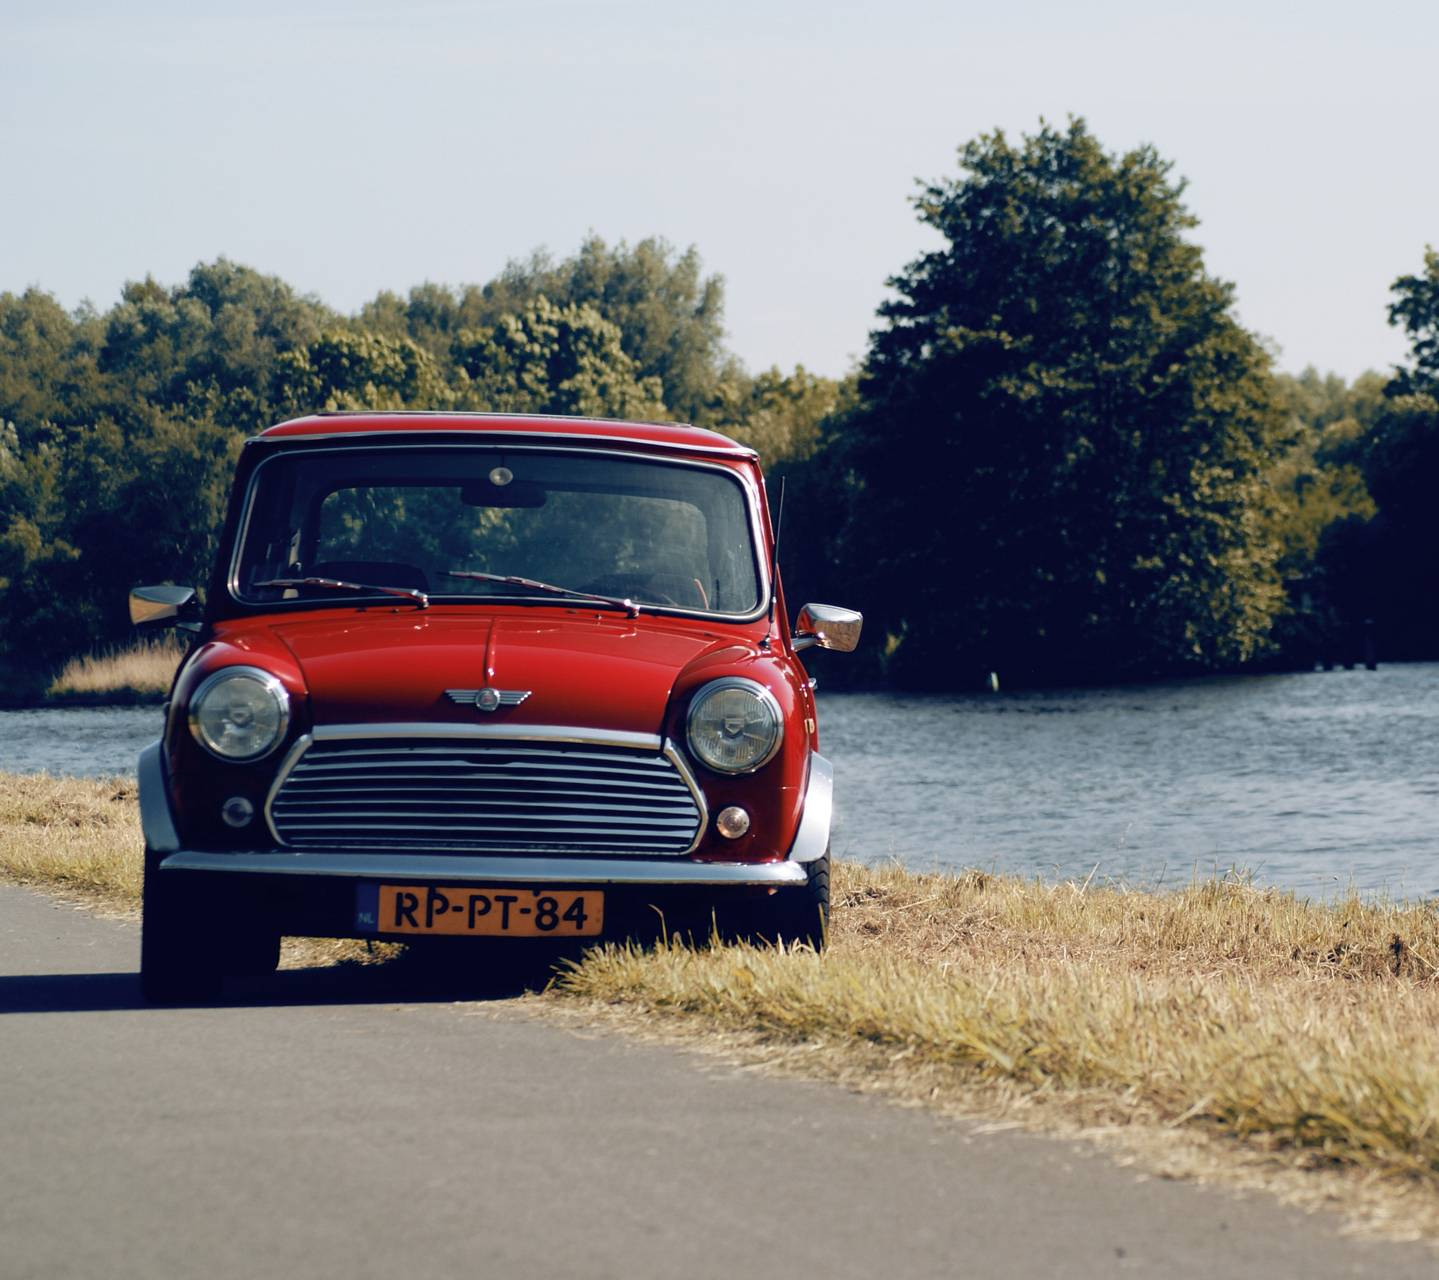 Mini Cooper Classic Wallpaper By Vilsong B0 Free On Zedge